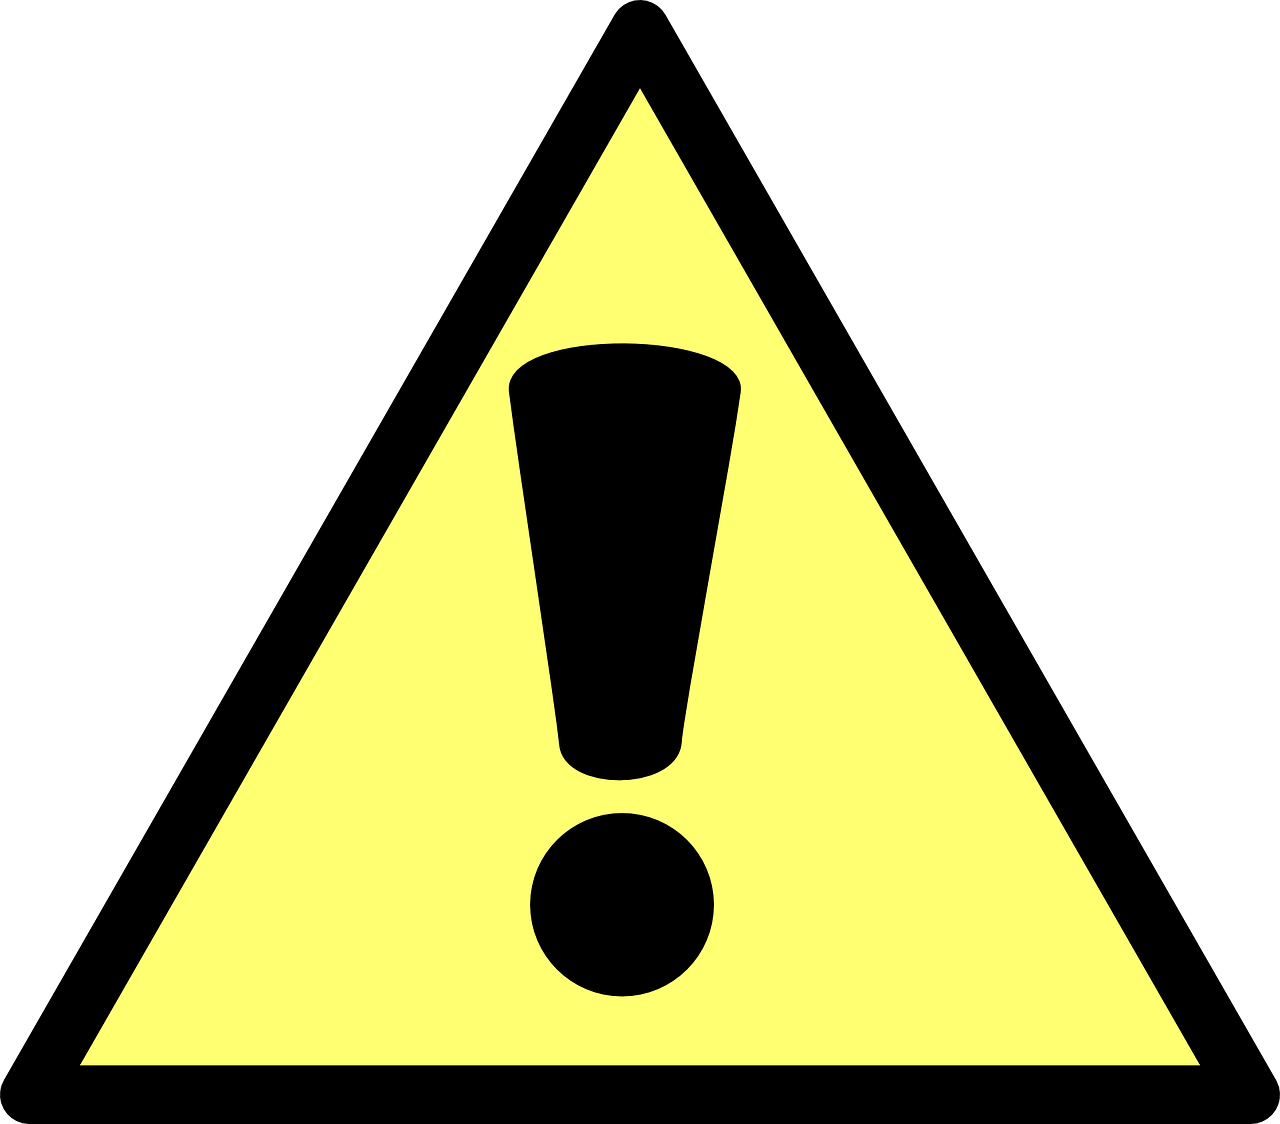 warning,action,caution,yield,sign,danger,safety,symbol,attention,dangerous,hazard,risk,alert,icon,beware,careful,protection,precaution,triangle,secure,safe,forbidden,computer,pc,exclamation,alertness,website,guidance,mistake,problem,important,exclamation sign icon,help,service,free vector graphics,free pictures, free photos, free images, royalty free, free illustrations, public domain